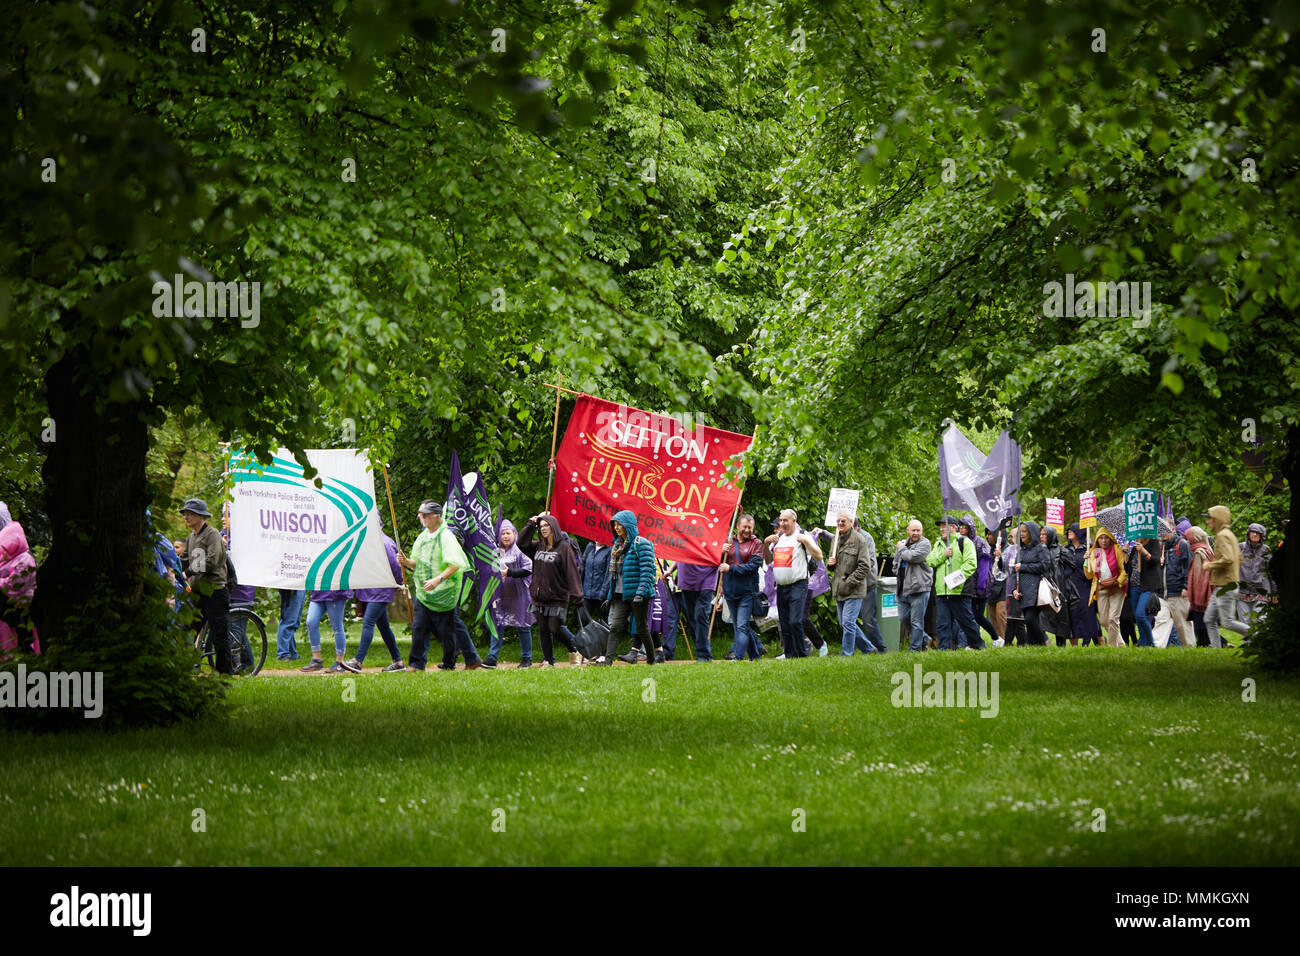 London, UK. 12th May 2018. London, UK. 12th May 2018. London, UK. 12th March 2018. Protestors march through a park in the rain towards a TUC rally. Credit: Kevin Frost/Alamy Live News Credit: Kevin Frost/Alamy Live News Credit: Kevin Frost/Alamy Live News - Stock Image